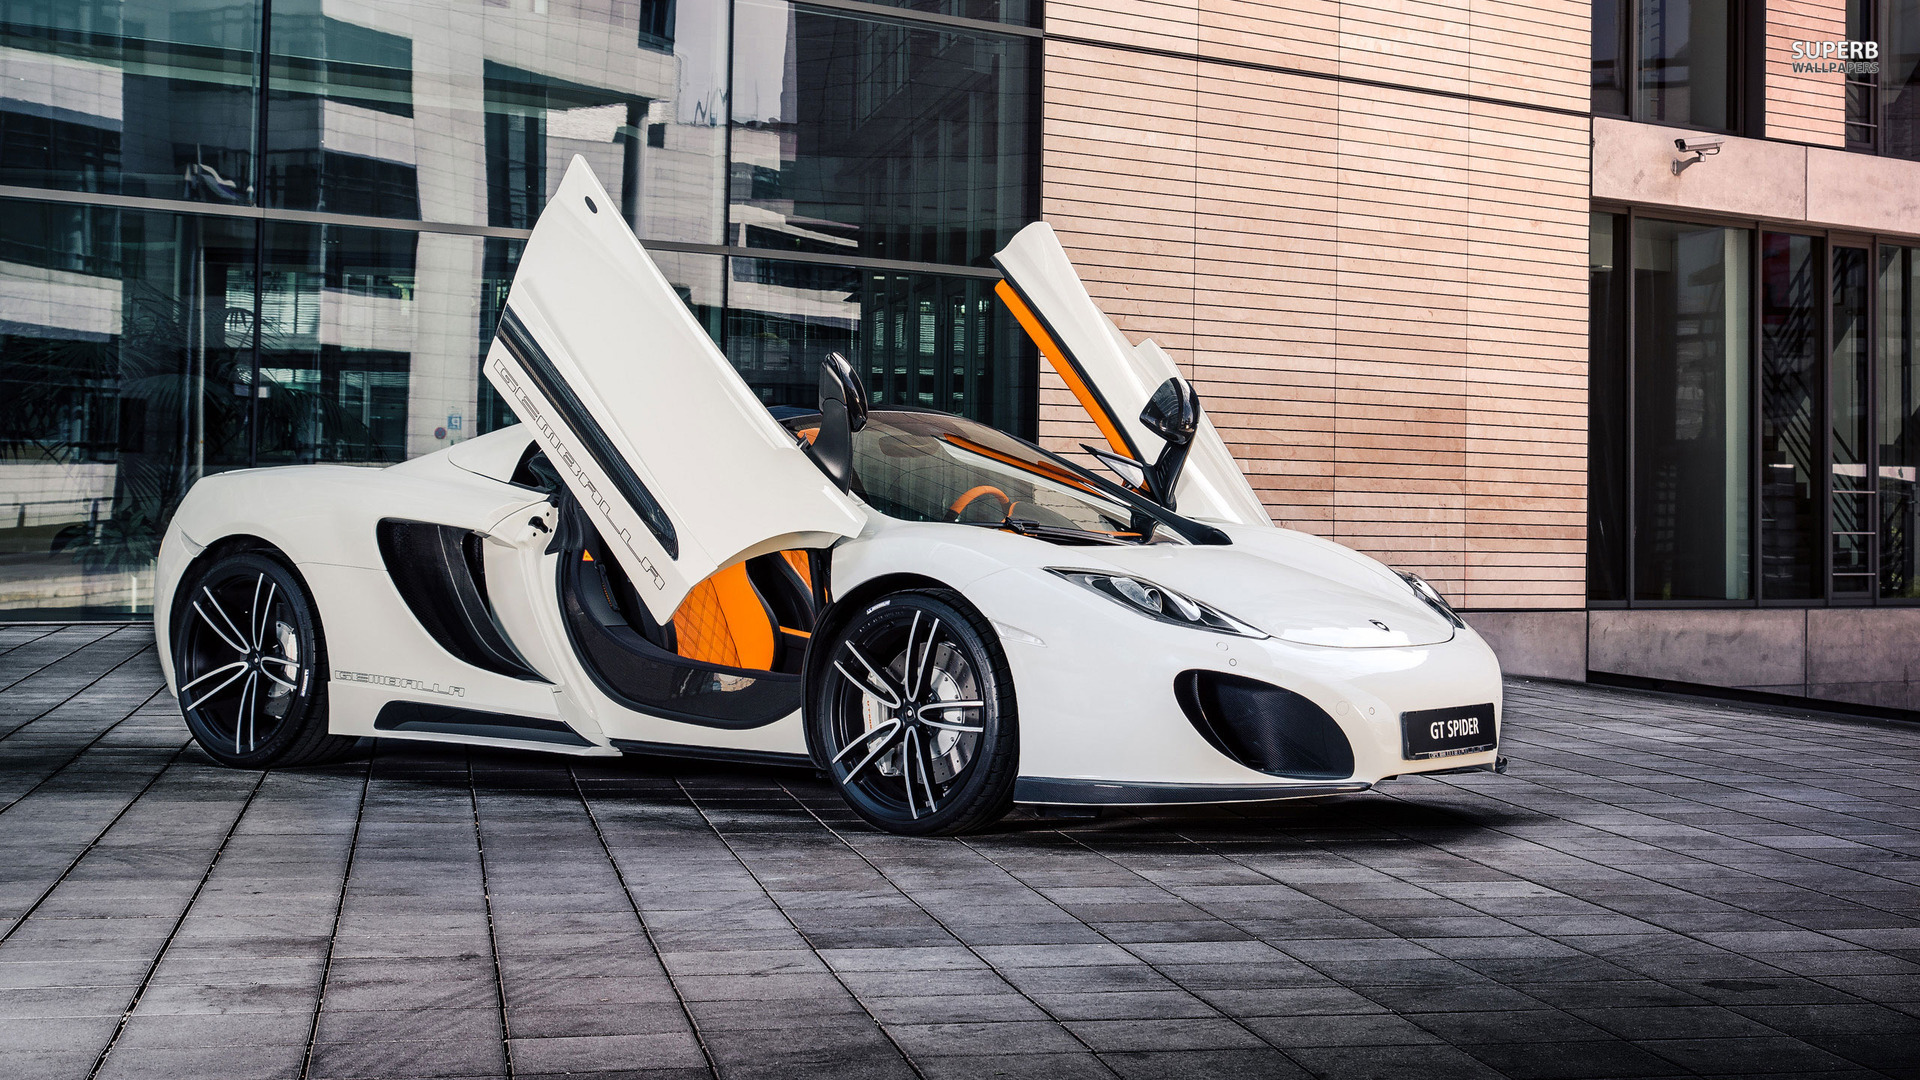 2013 Gemballa McLaren MP4-12C GT wallpaper 1920x1080